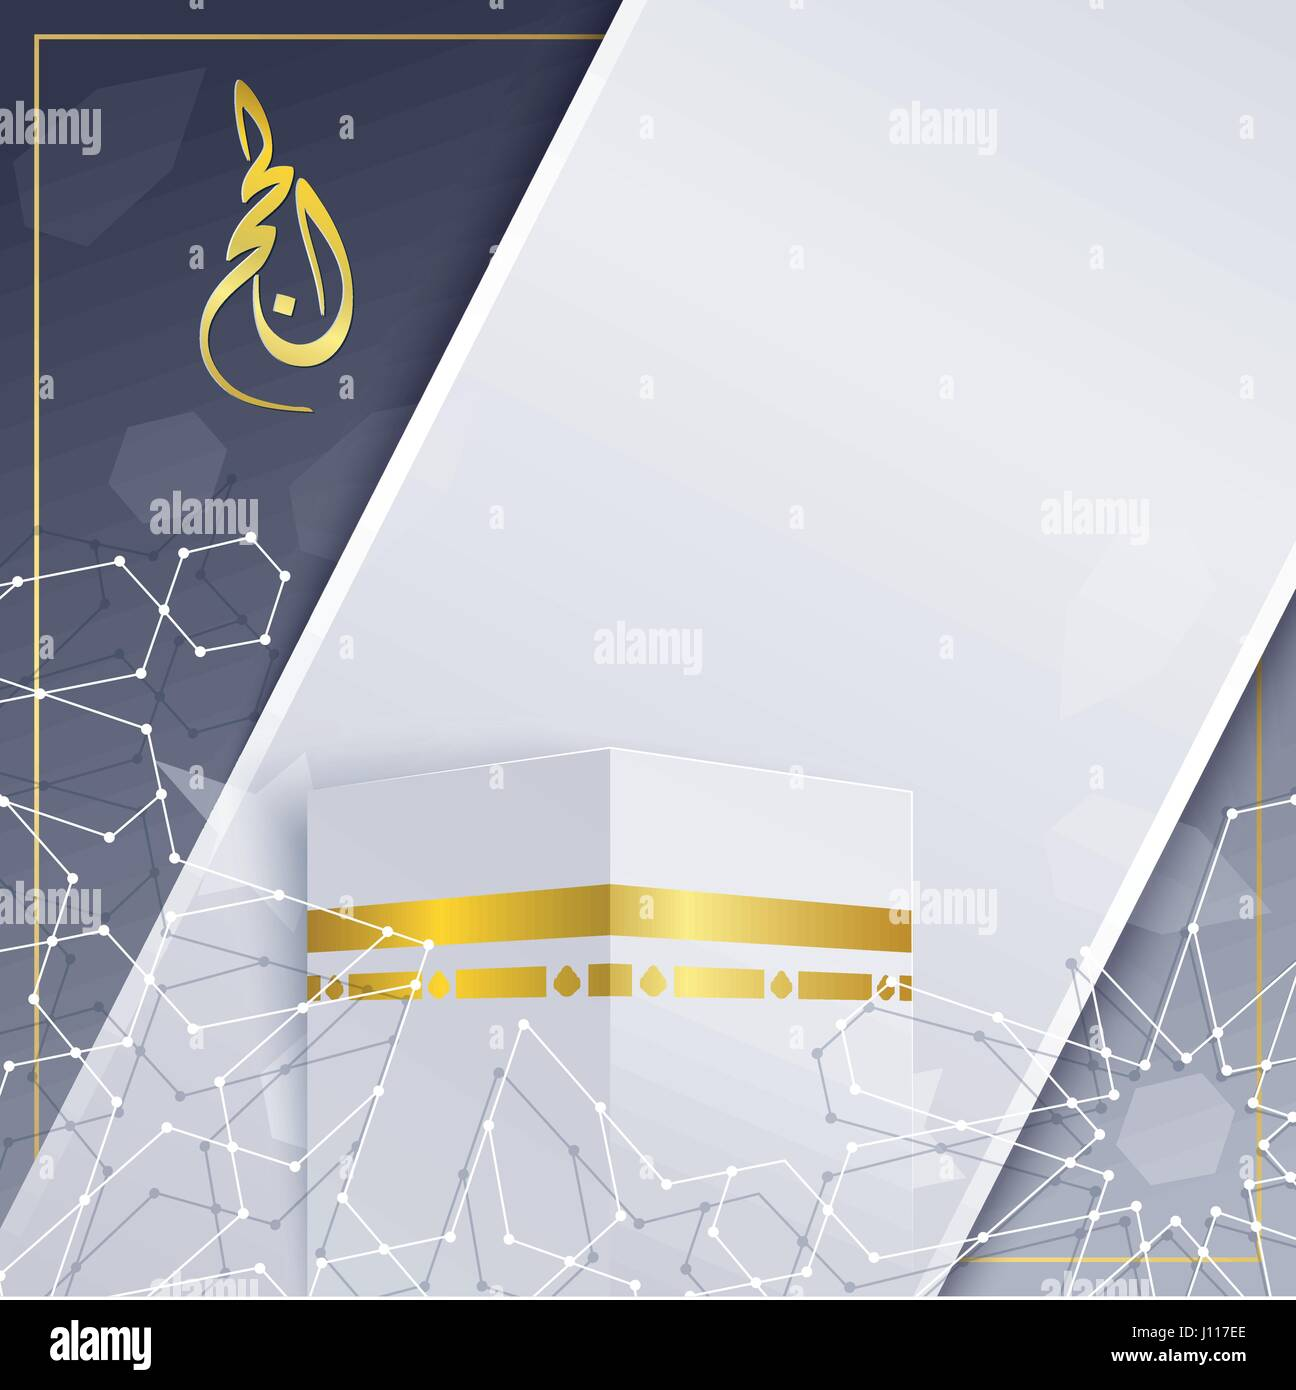 Umrah Banner: Islamic Design Greeting Card Template Hajj (Pilgrimage